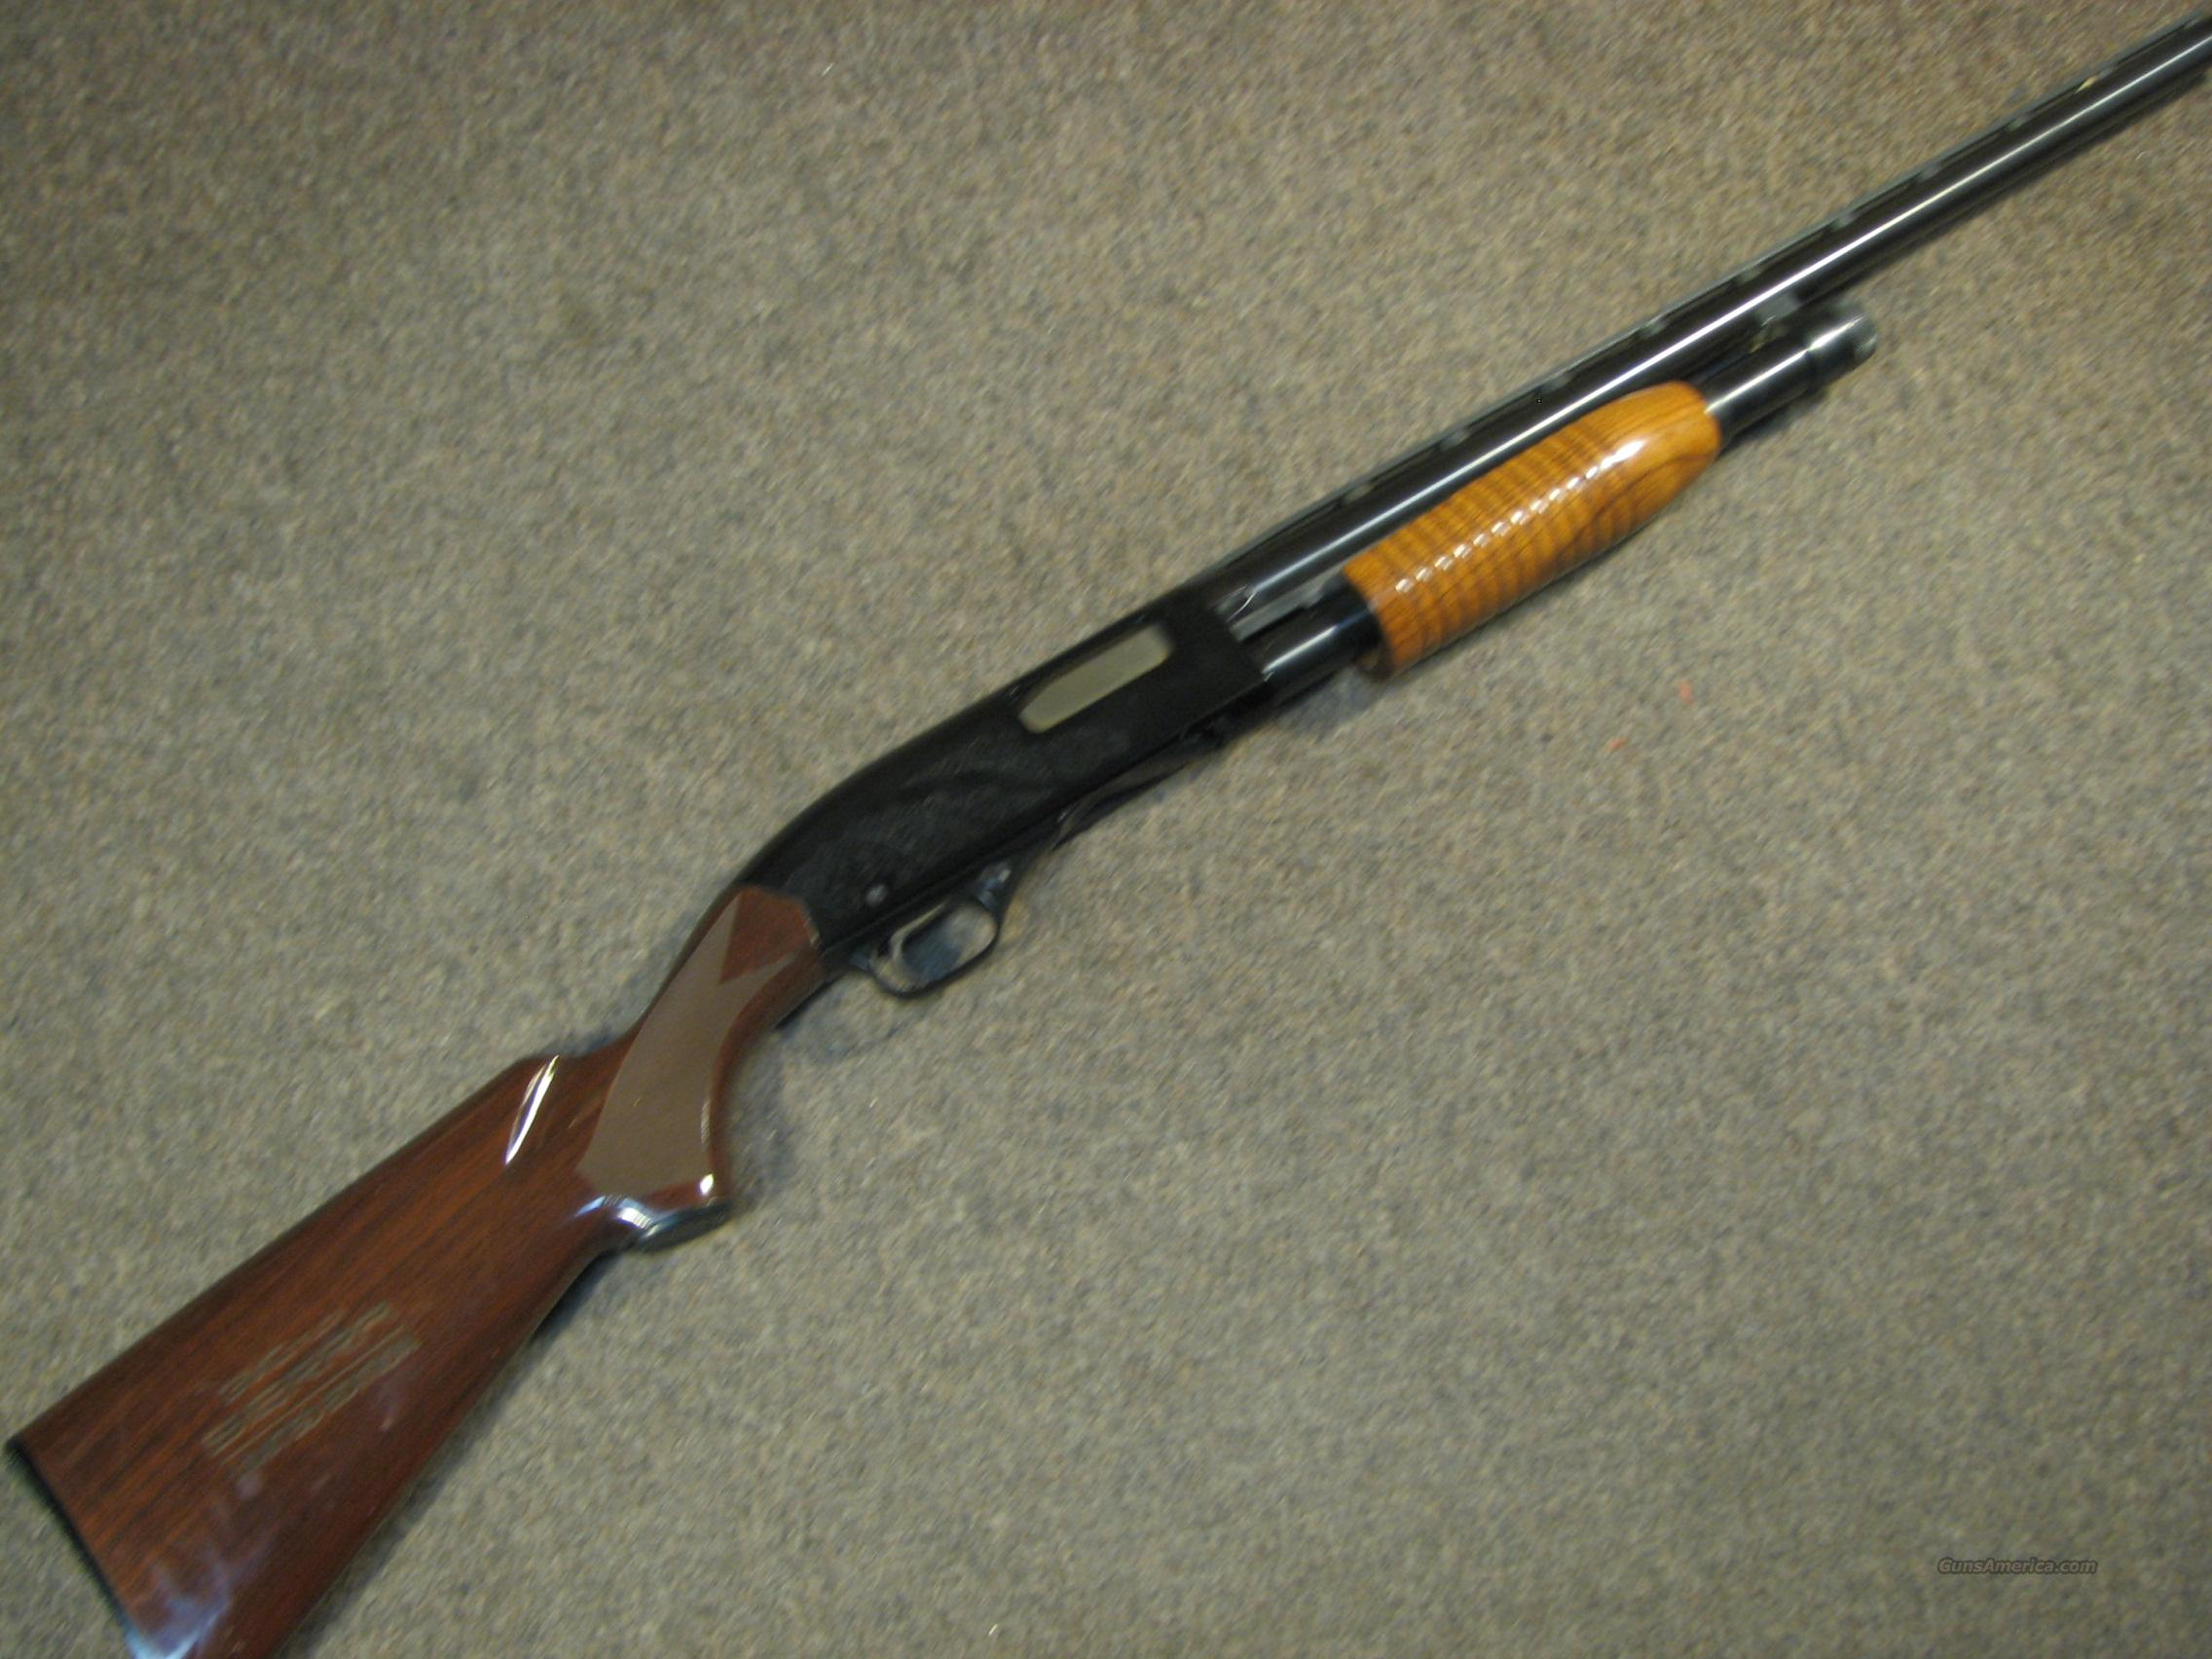 WINCHESTER 1300 LIGHTWEIGHT 20 GA - GMC Sierra Limited Edition  Guns > Shotguns > Winchester Shotguns - Modern > Pump Action > Hunting